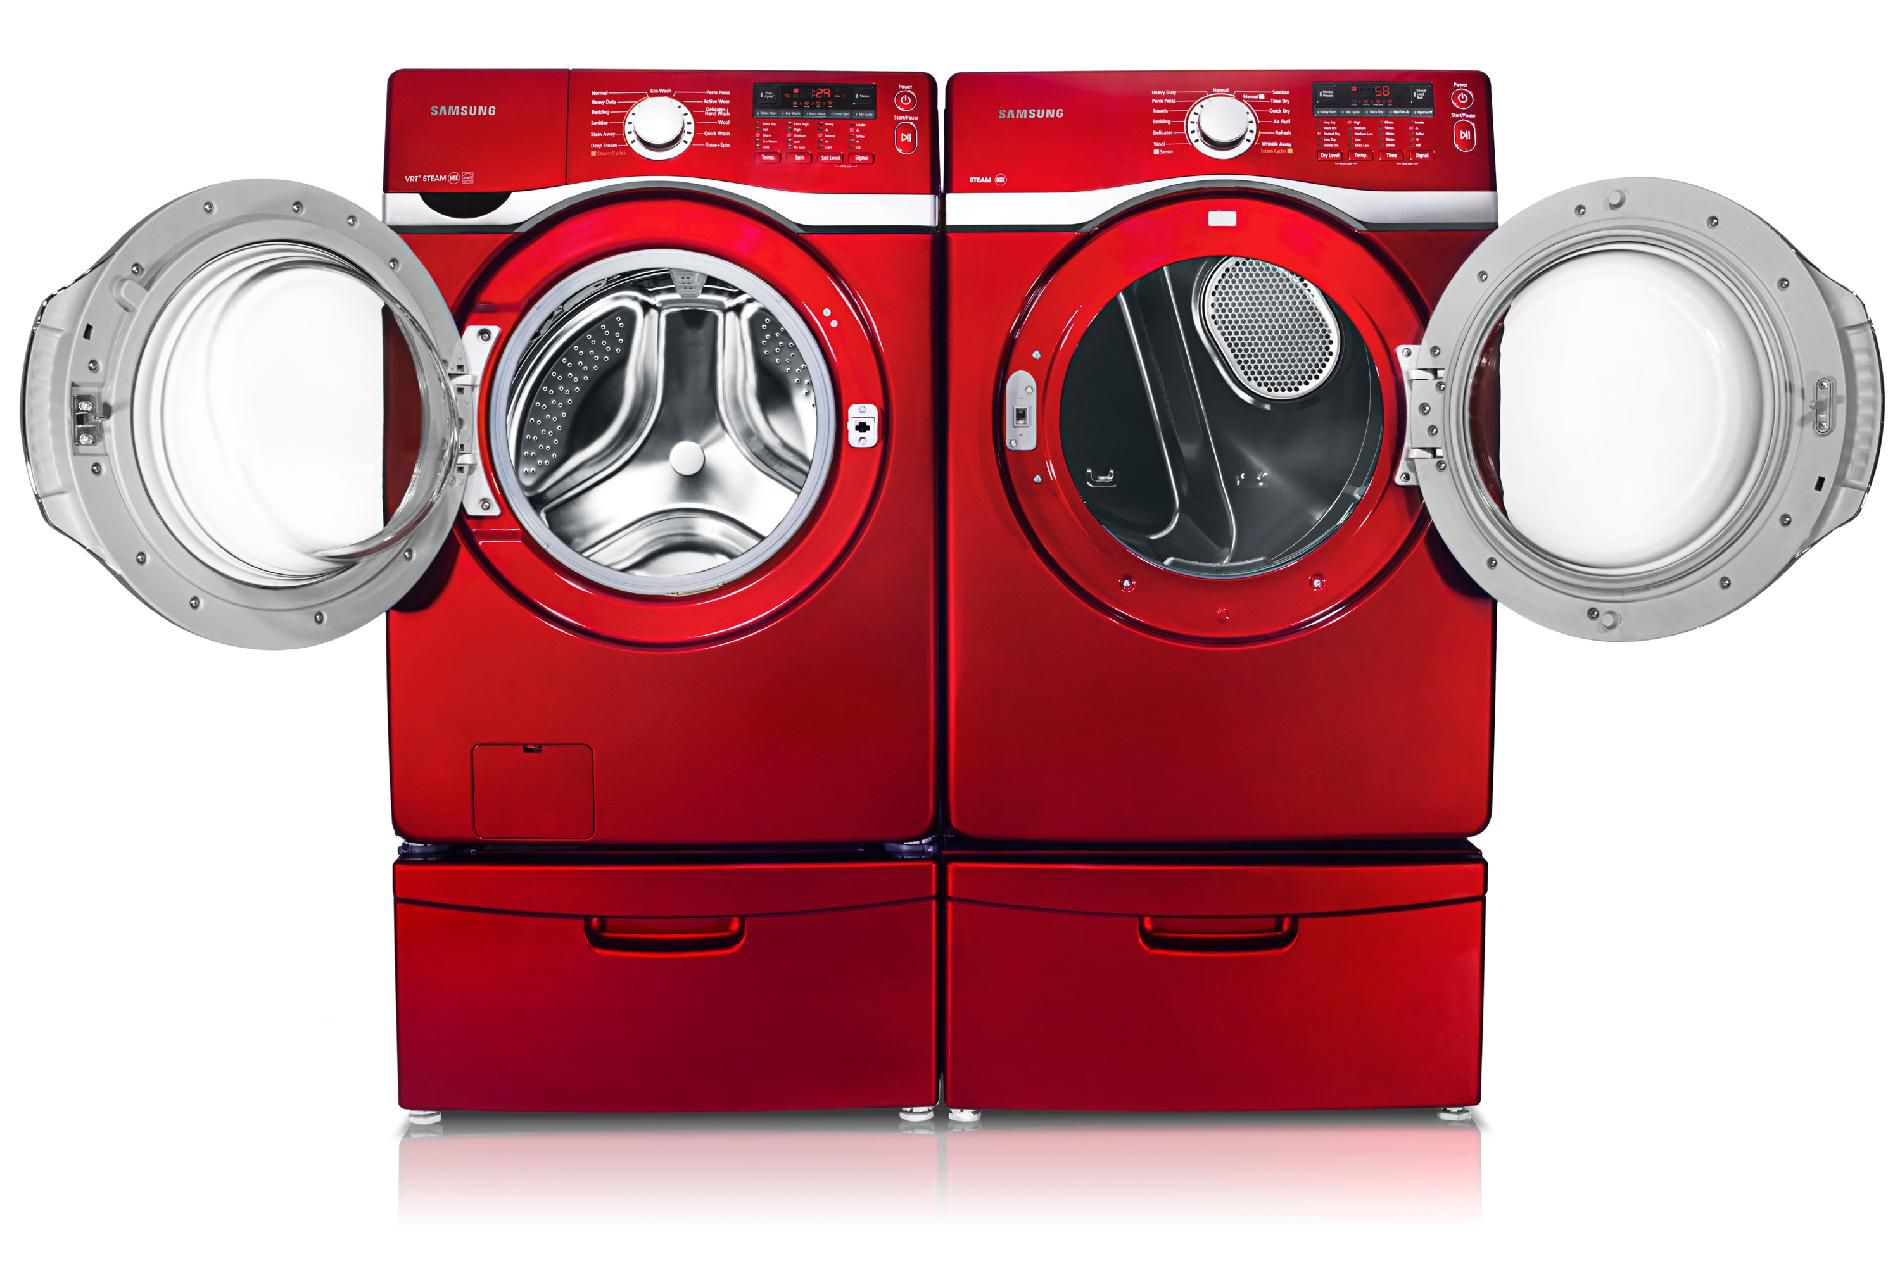 Samsung 7.4 cu. ft. Electric Dryer - Potomac Red